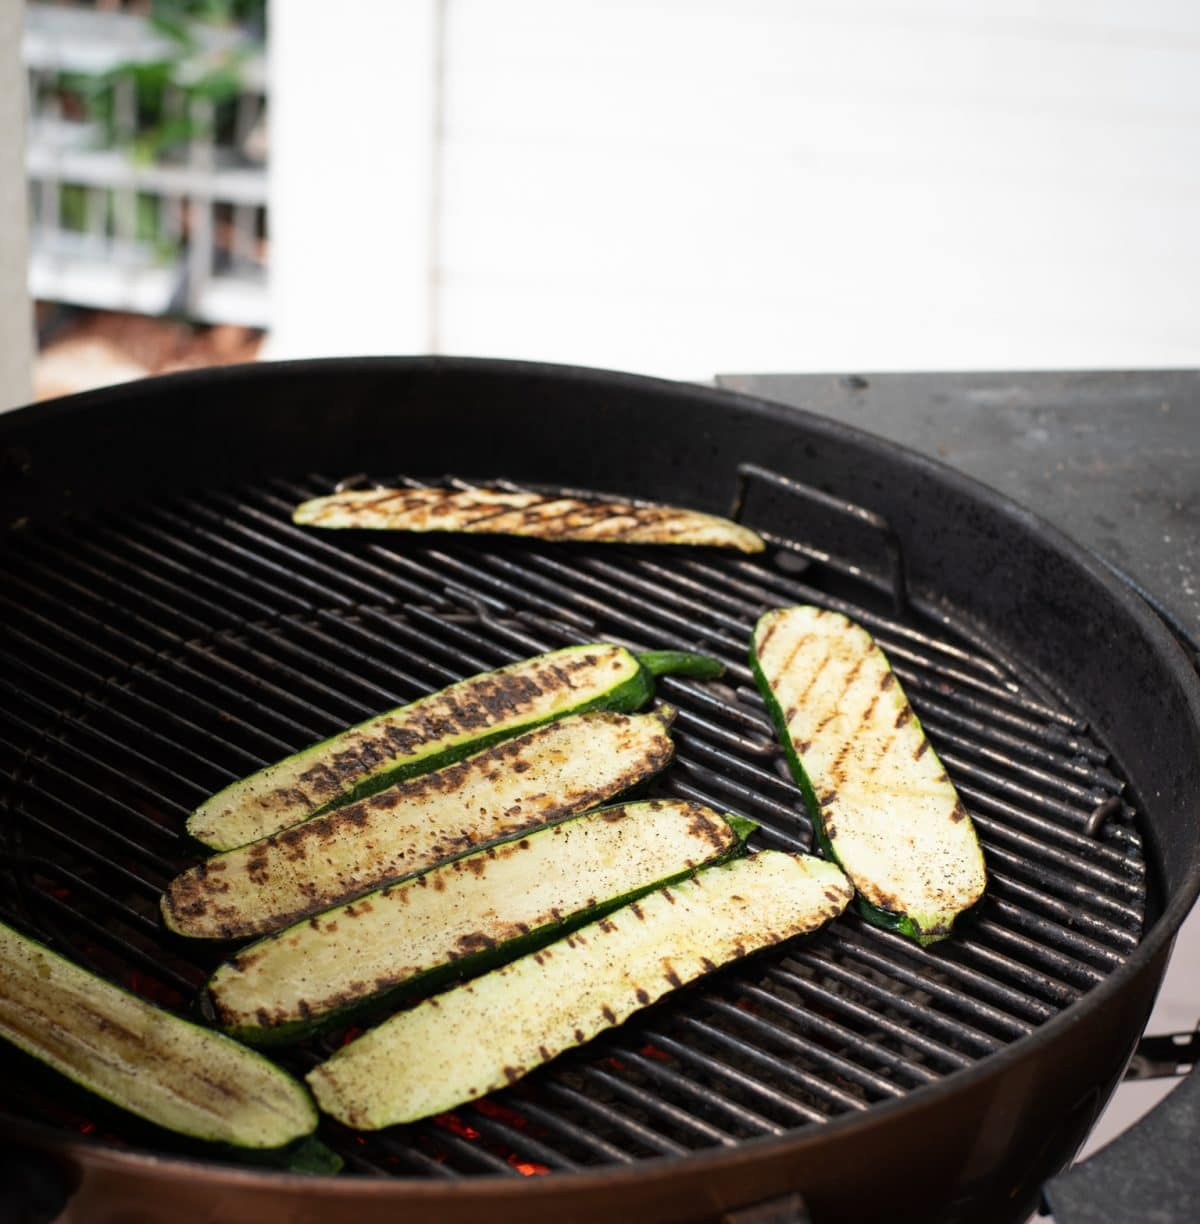 Grilled zucchini on a webber grill